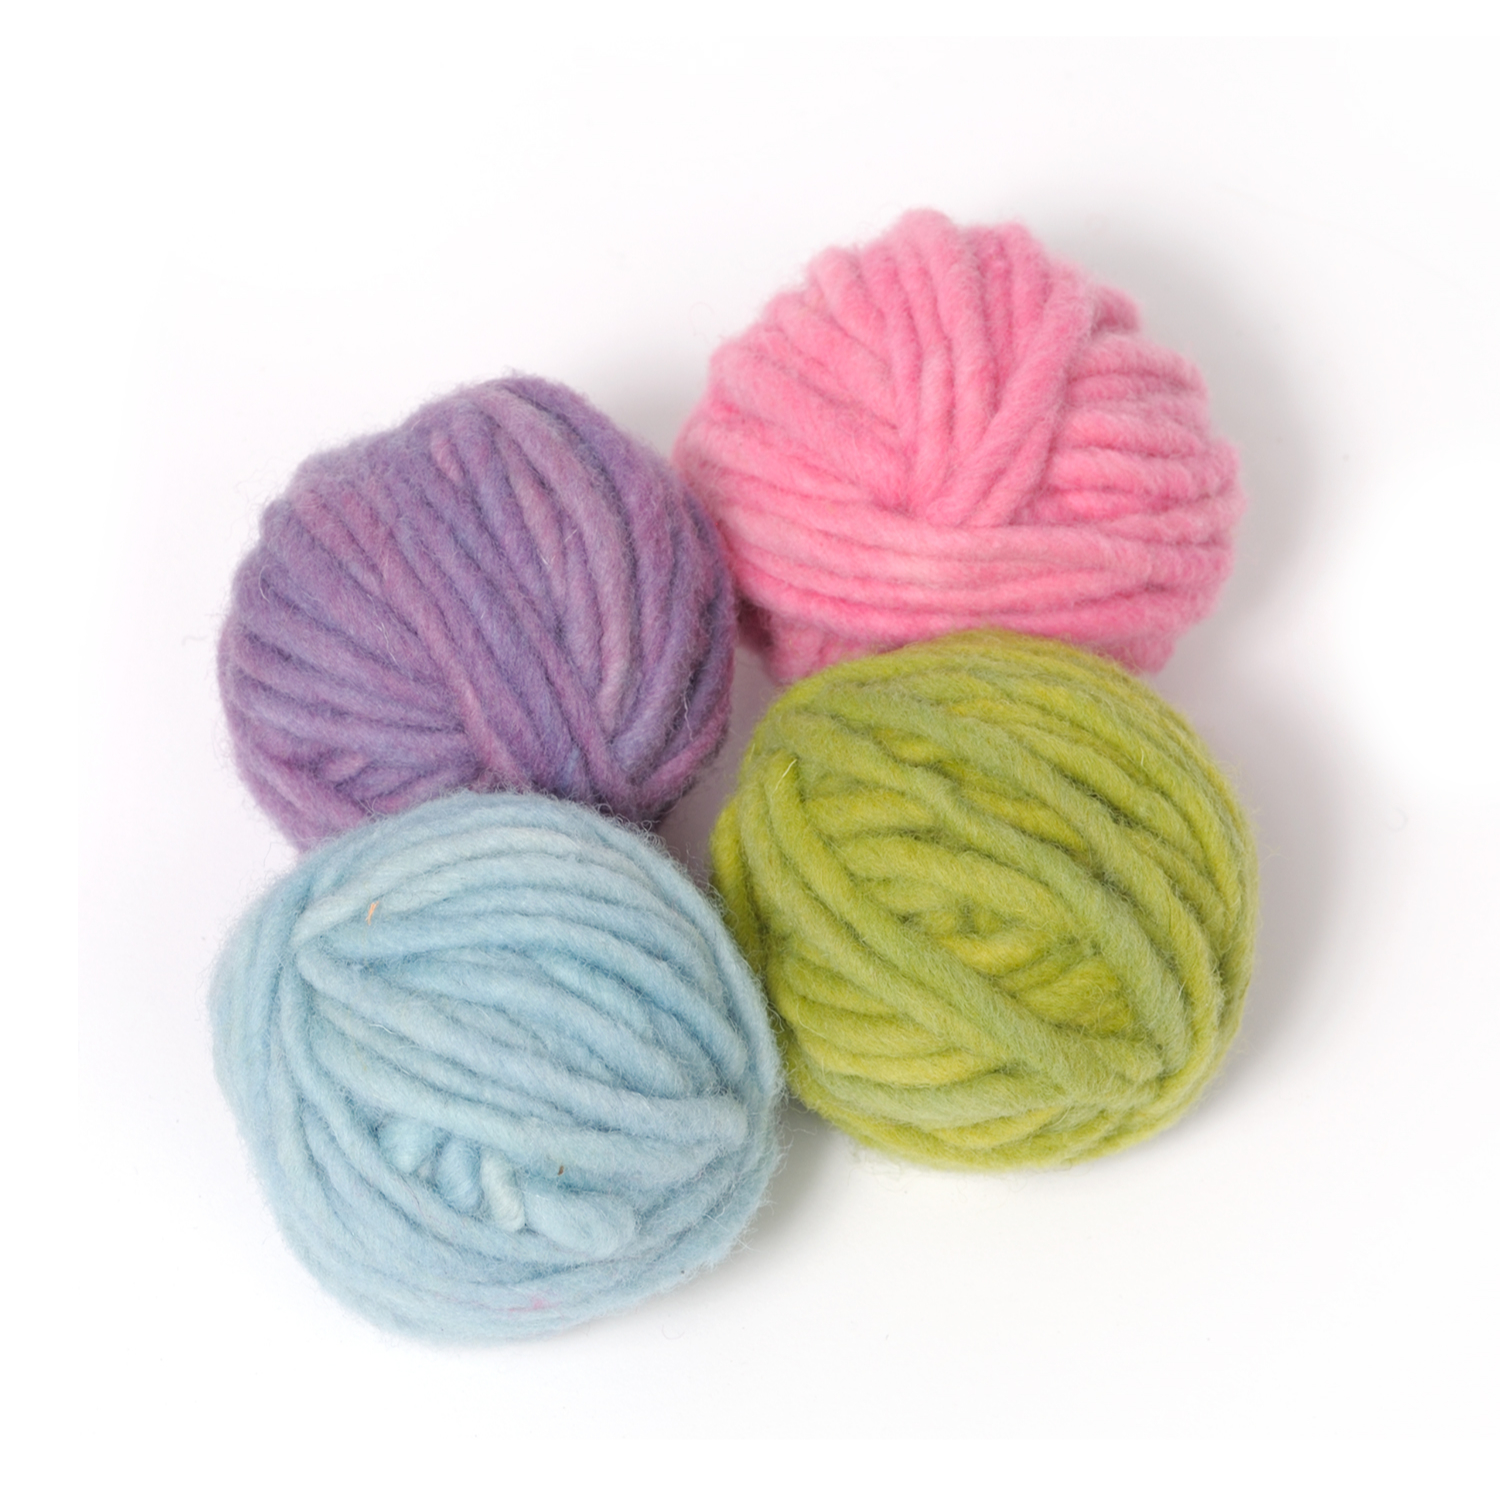 Filges Plant-dyed Organic Wool in Pastel Colours 4 x 25 g.